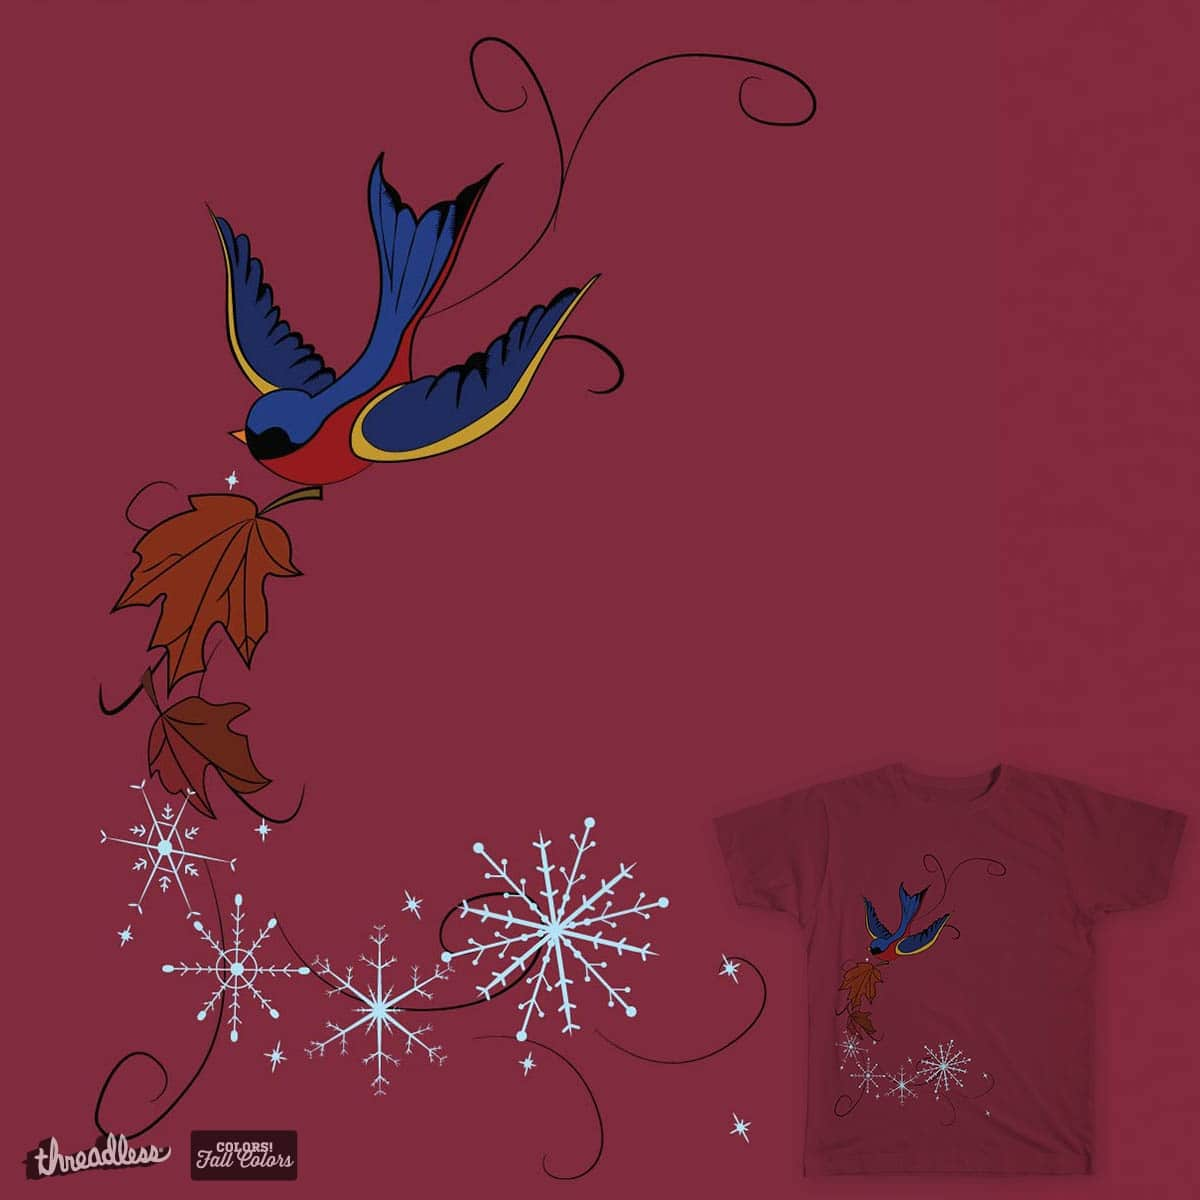 Swallow and snowflake by 2215 on Threadless